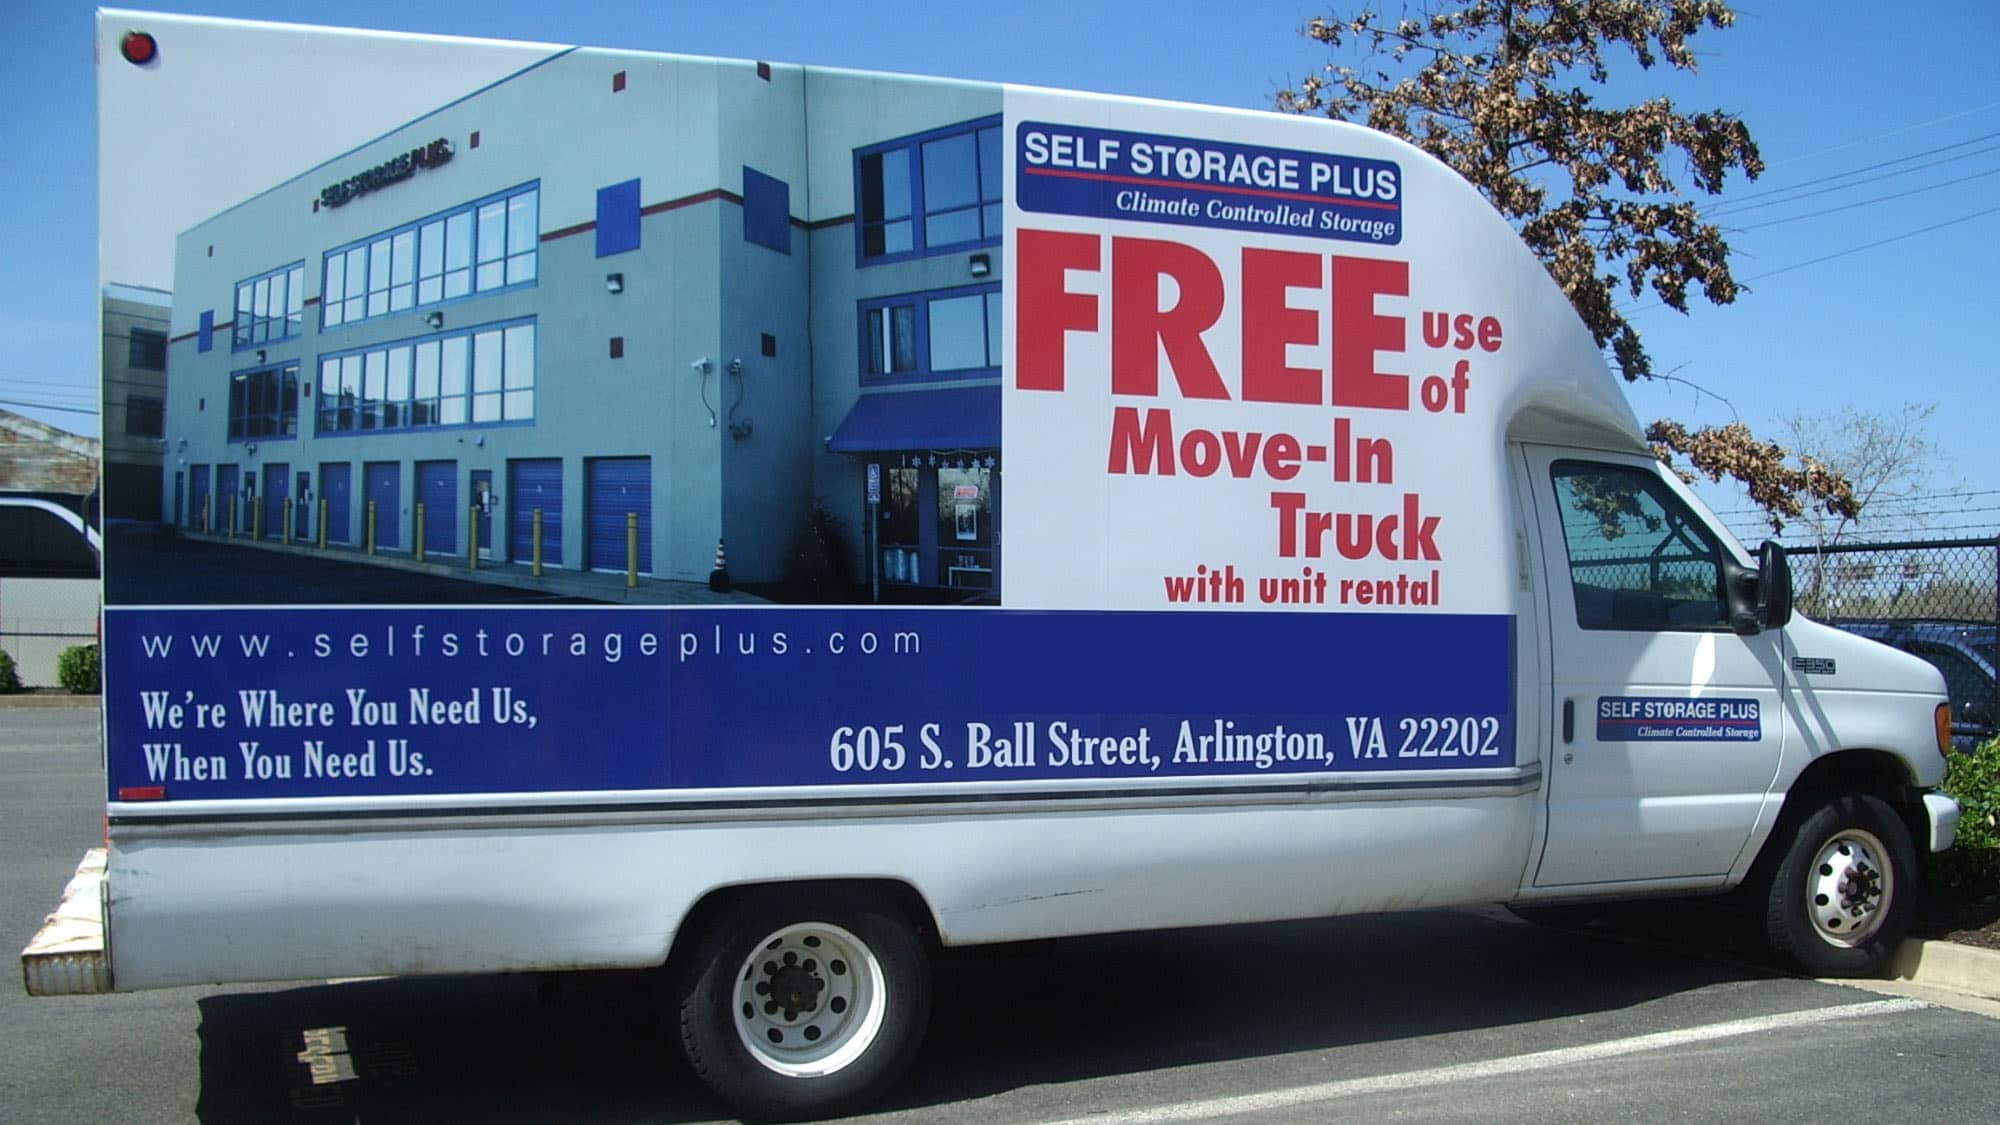 Moving Truck Available At Self Storage Plus In Arlington, VA